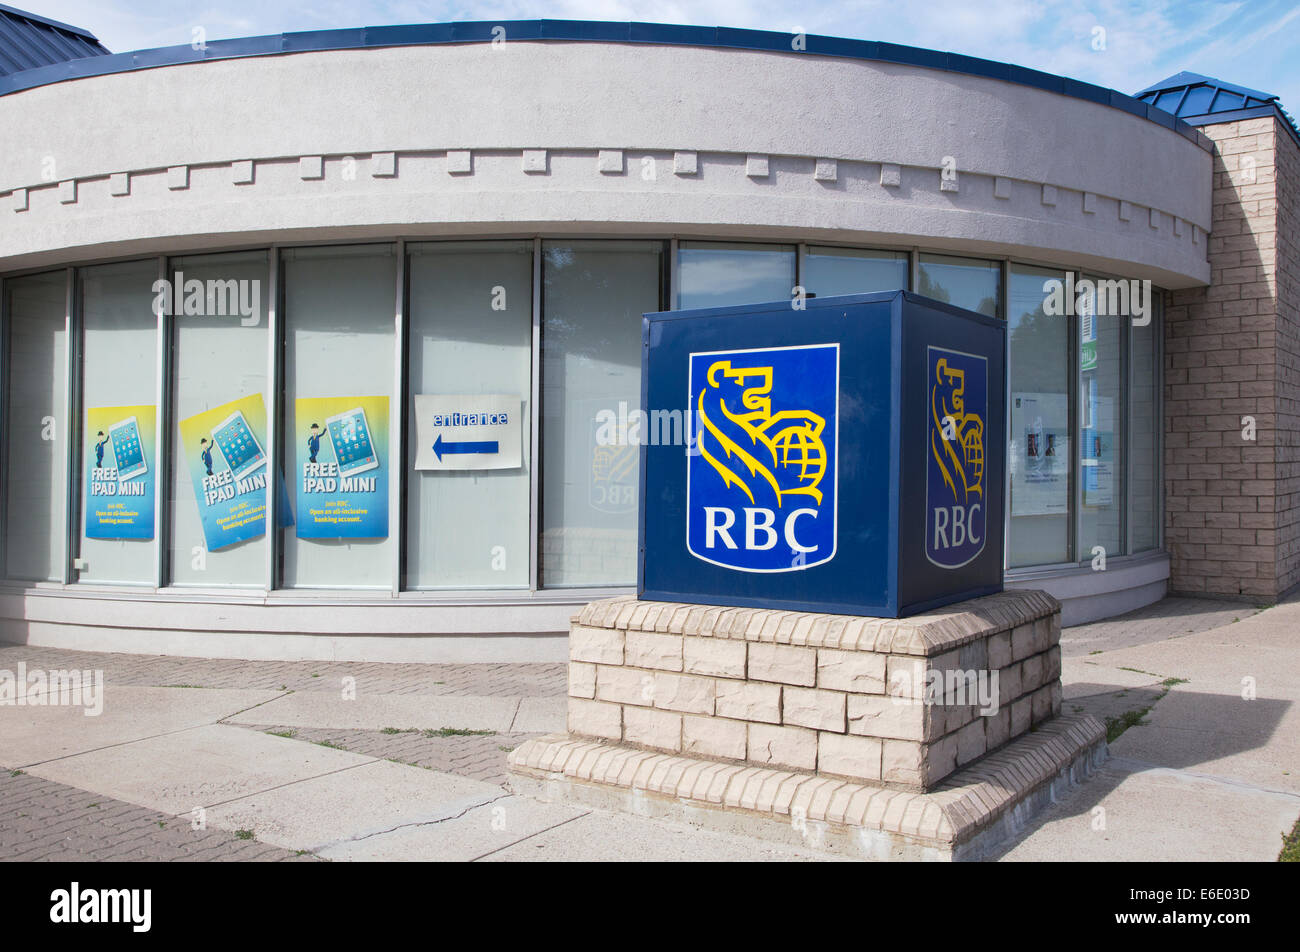 RBC Royal Bank offering promotion - Stock Image